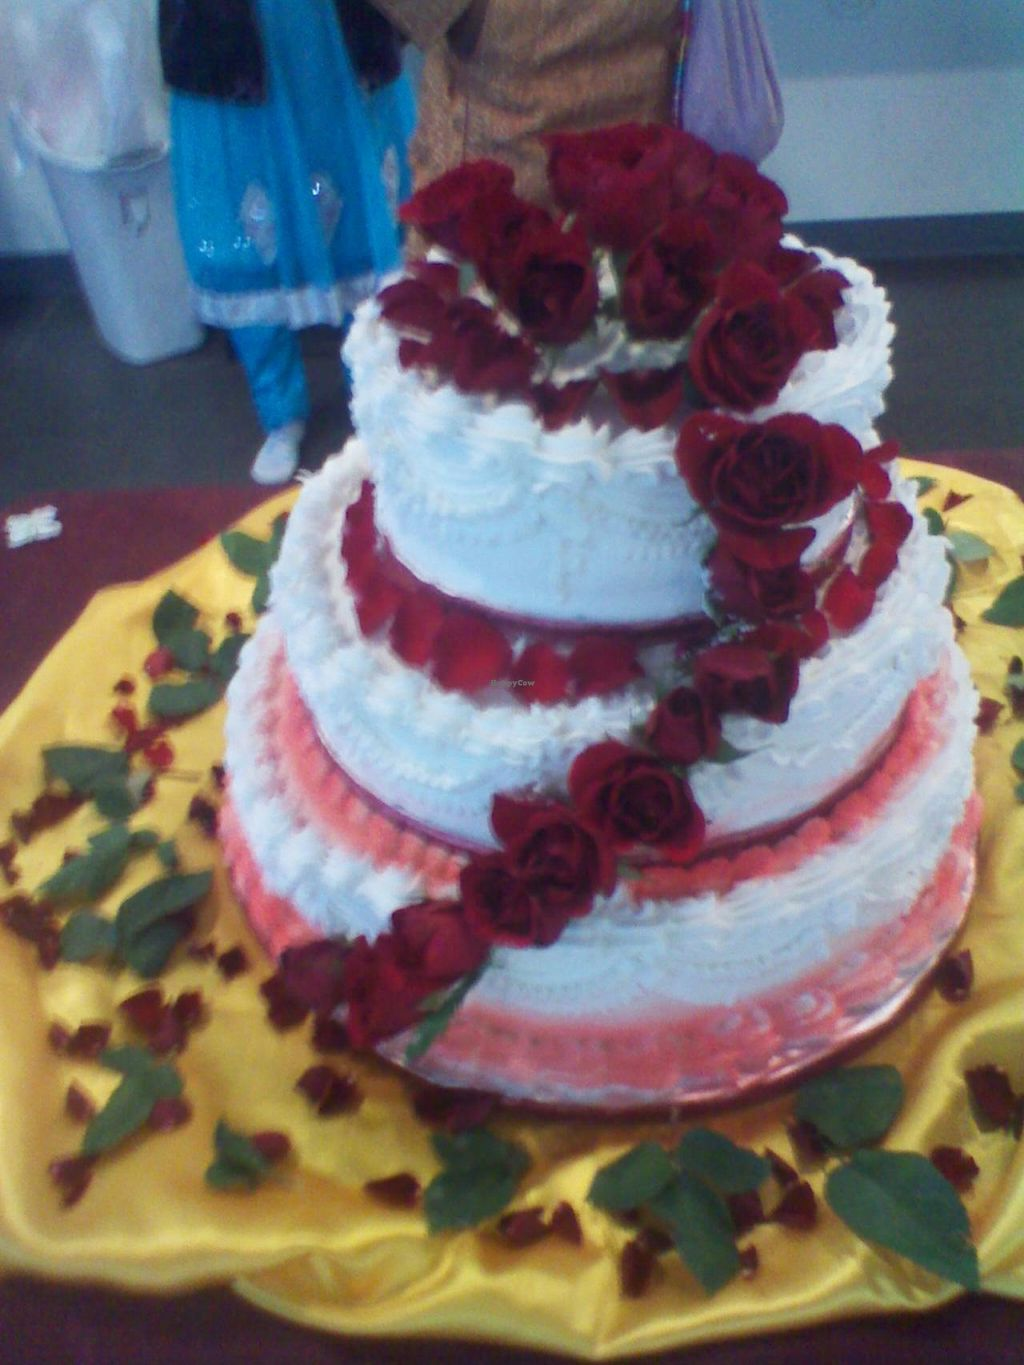 Photo of Rose Valley Cakes  by rosevalley1 <br/>vegan wedding cake <br/> March 21, 2014  - <a href='/contact/abuse/image/45900/66283'>Report</a>